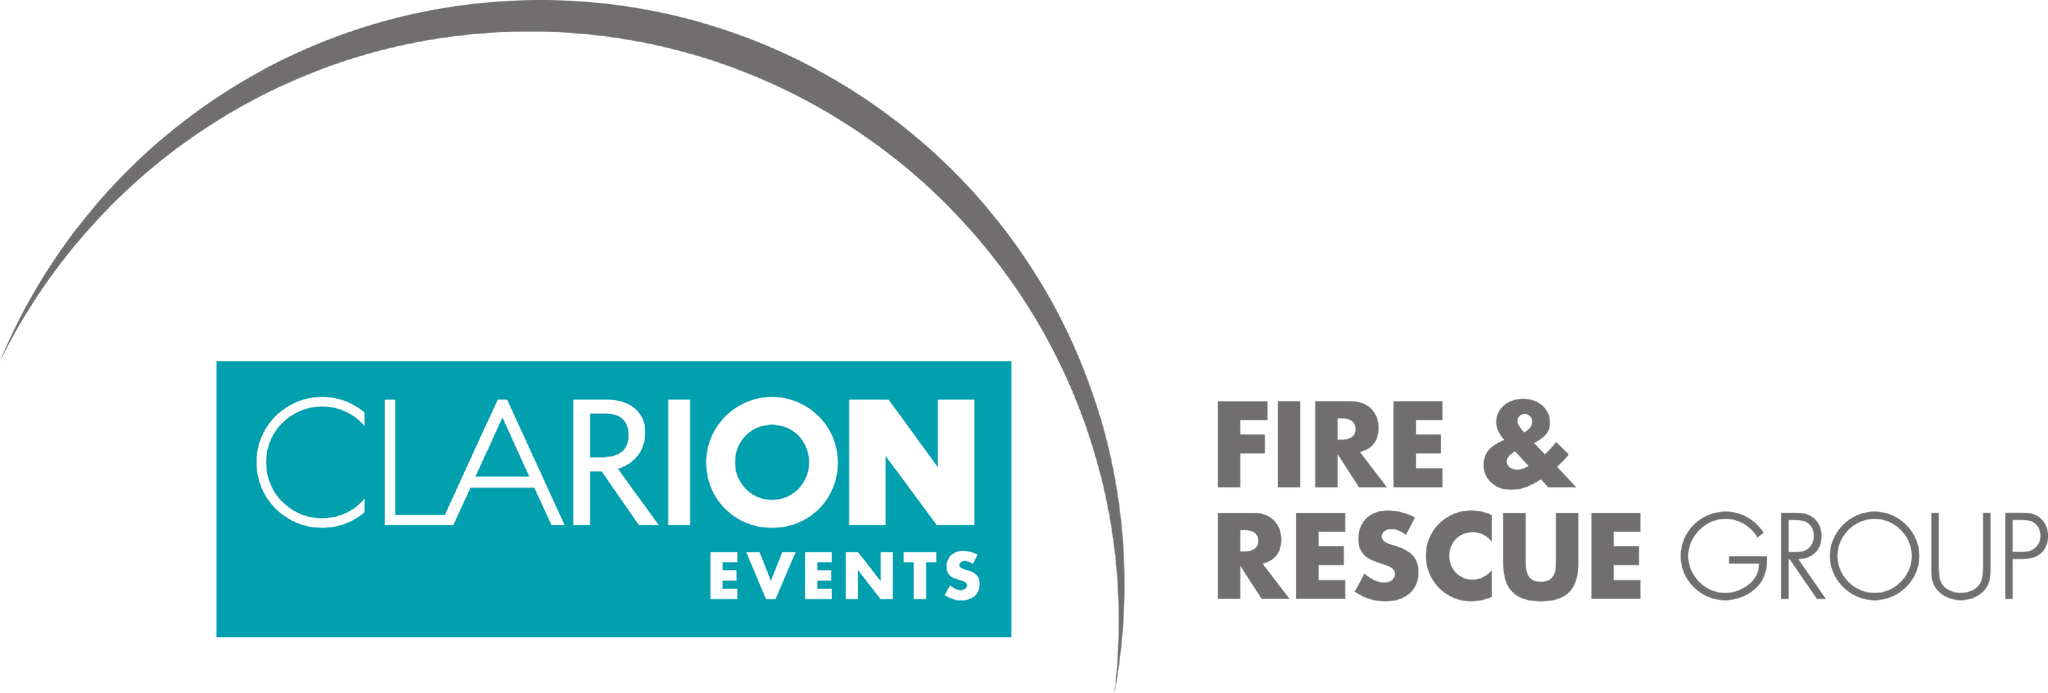 Clarion Events Fire & Rescue